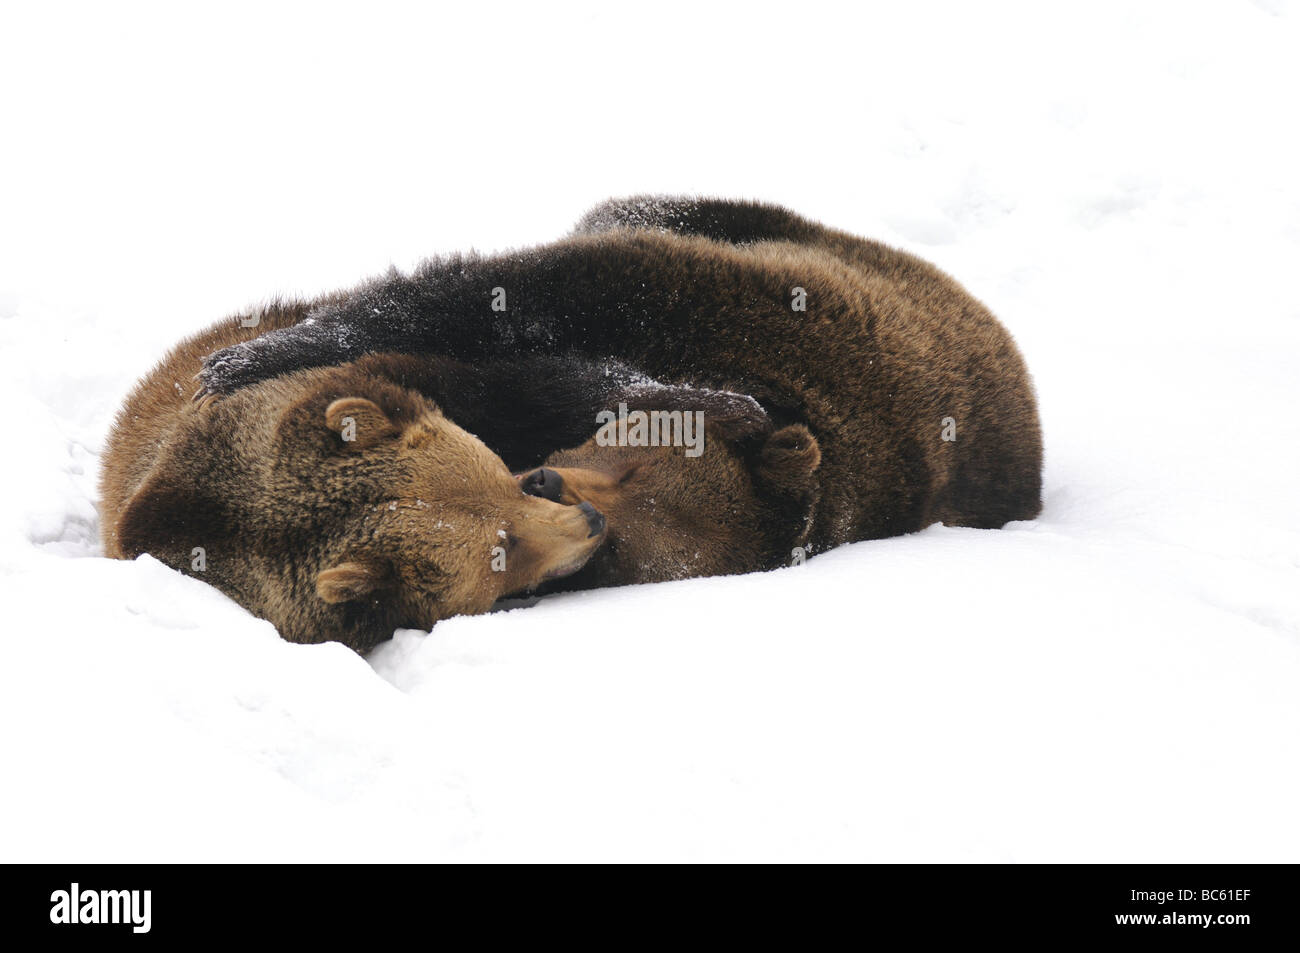 Two Brown bears (Ursus arctos) playing in snow, Bavarian Forest National Park, Bavaria, Germany - Stock Image